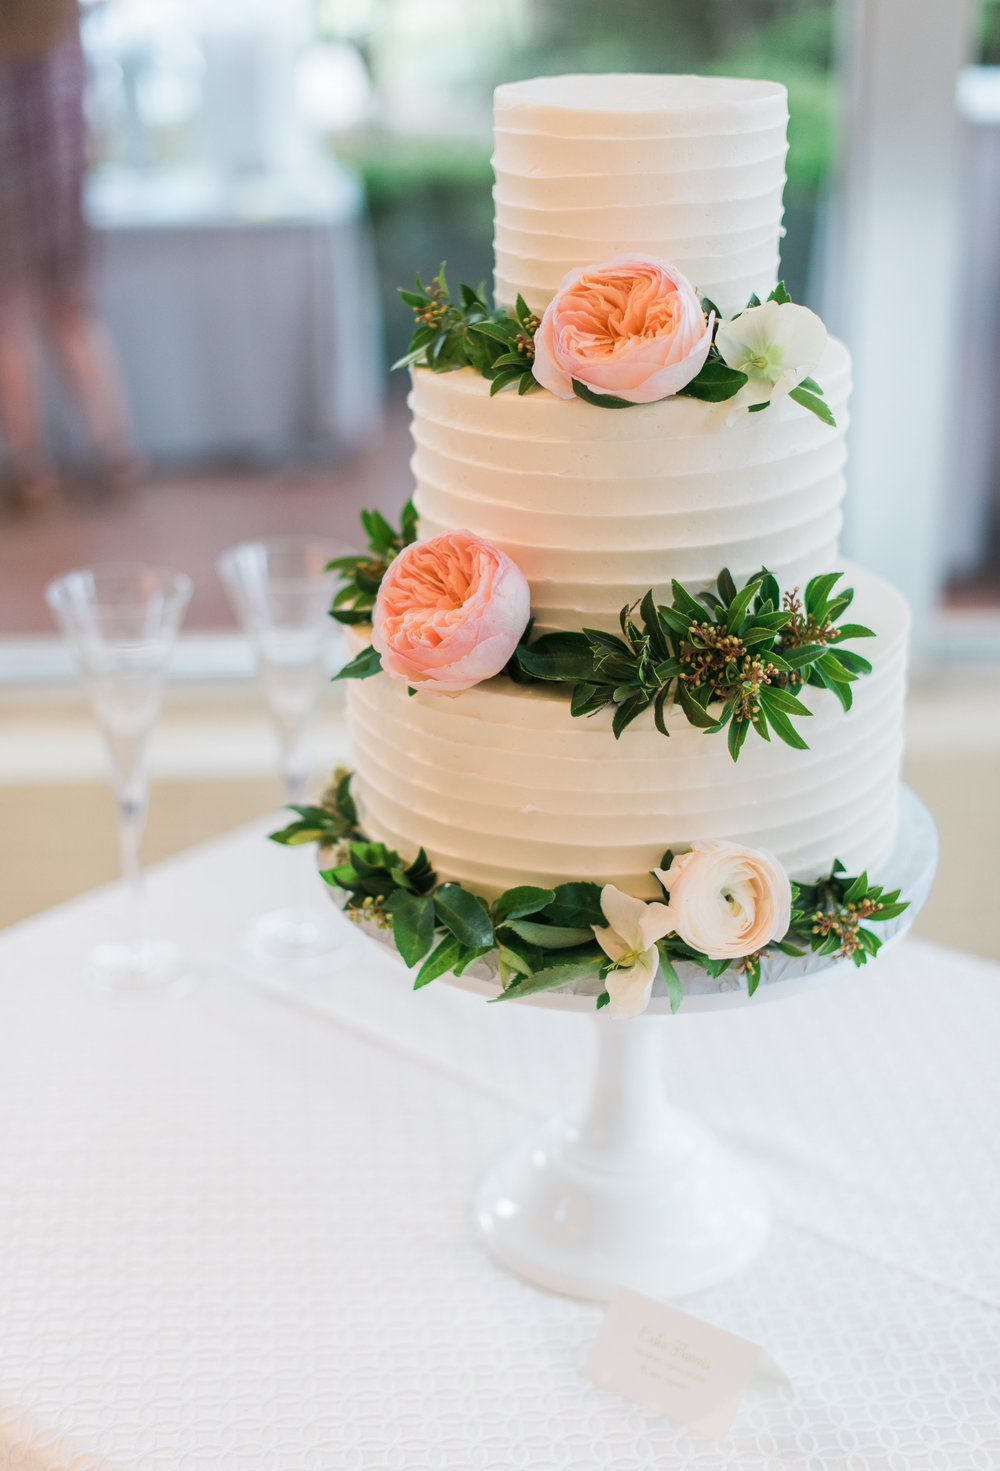 textured_buttercream_custom_wedding_cake_fresh_floral_sugarbeesweets.jpg